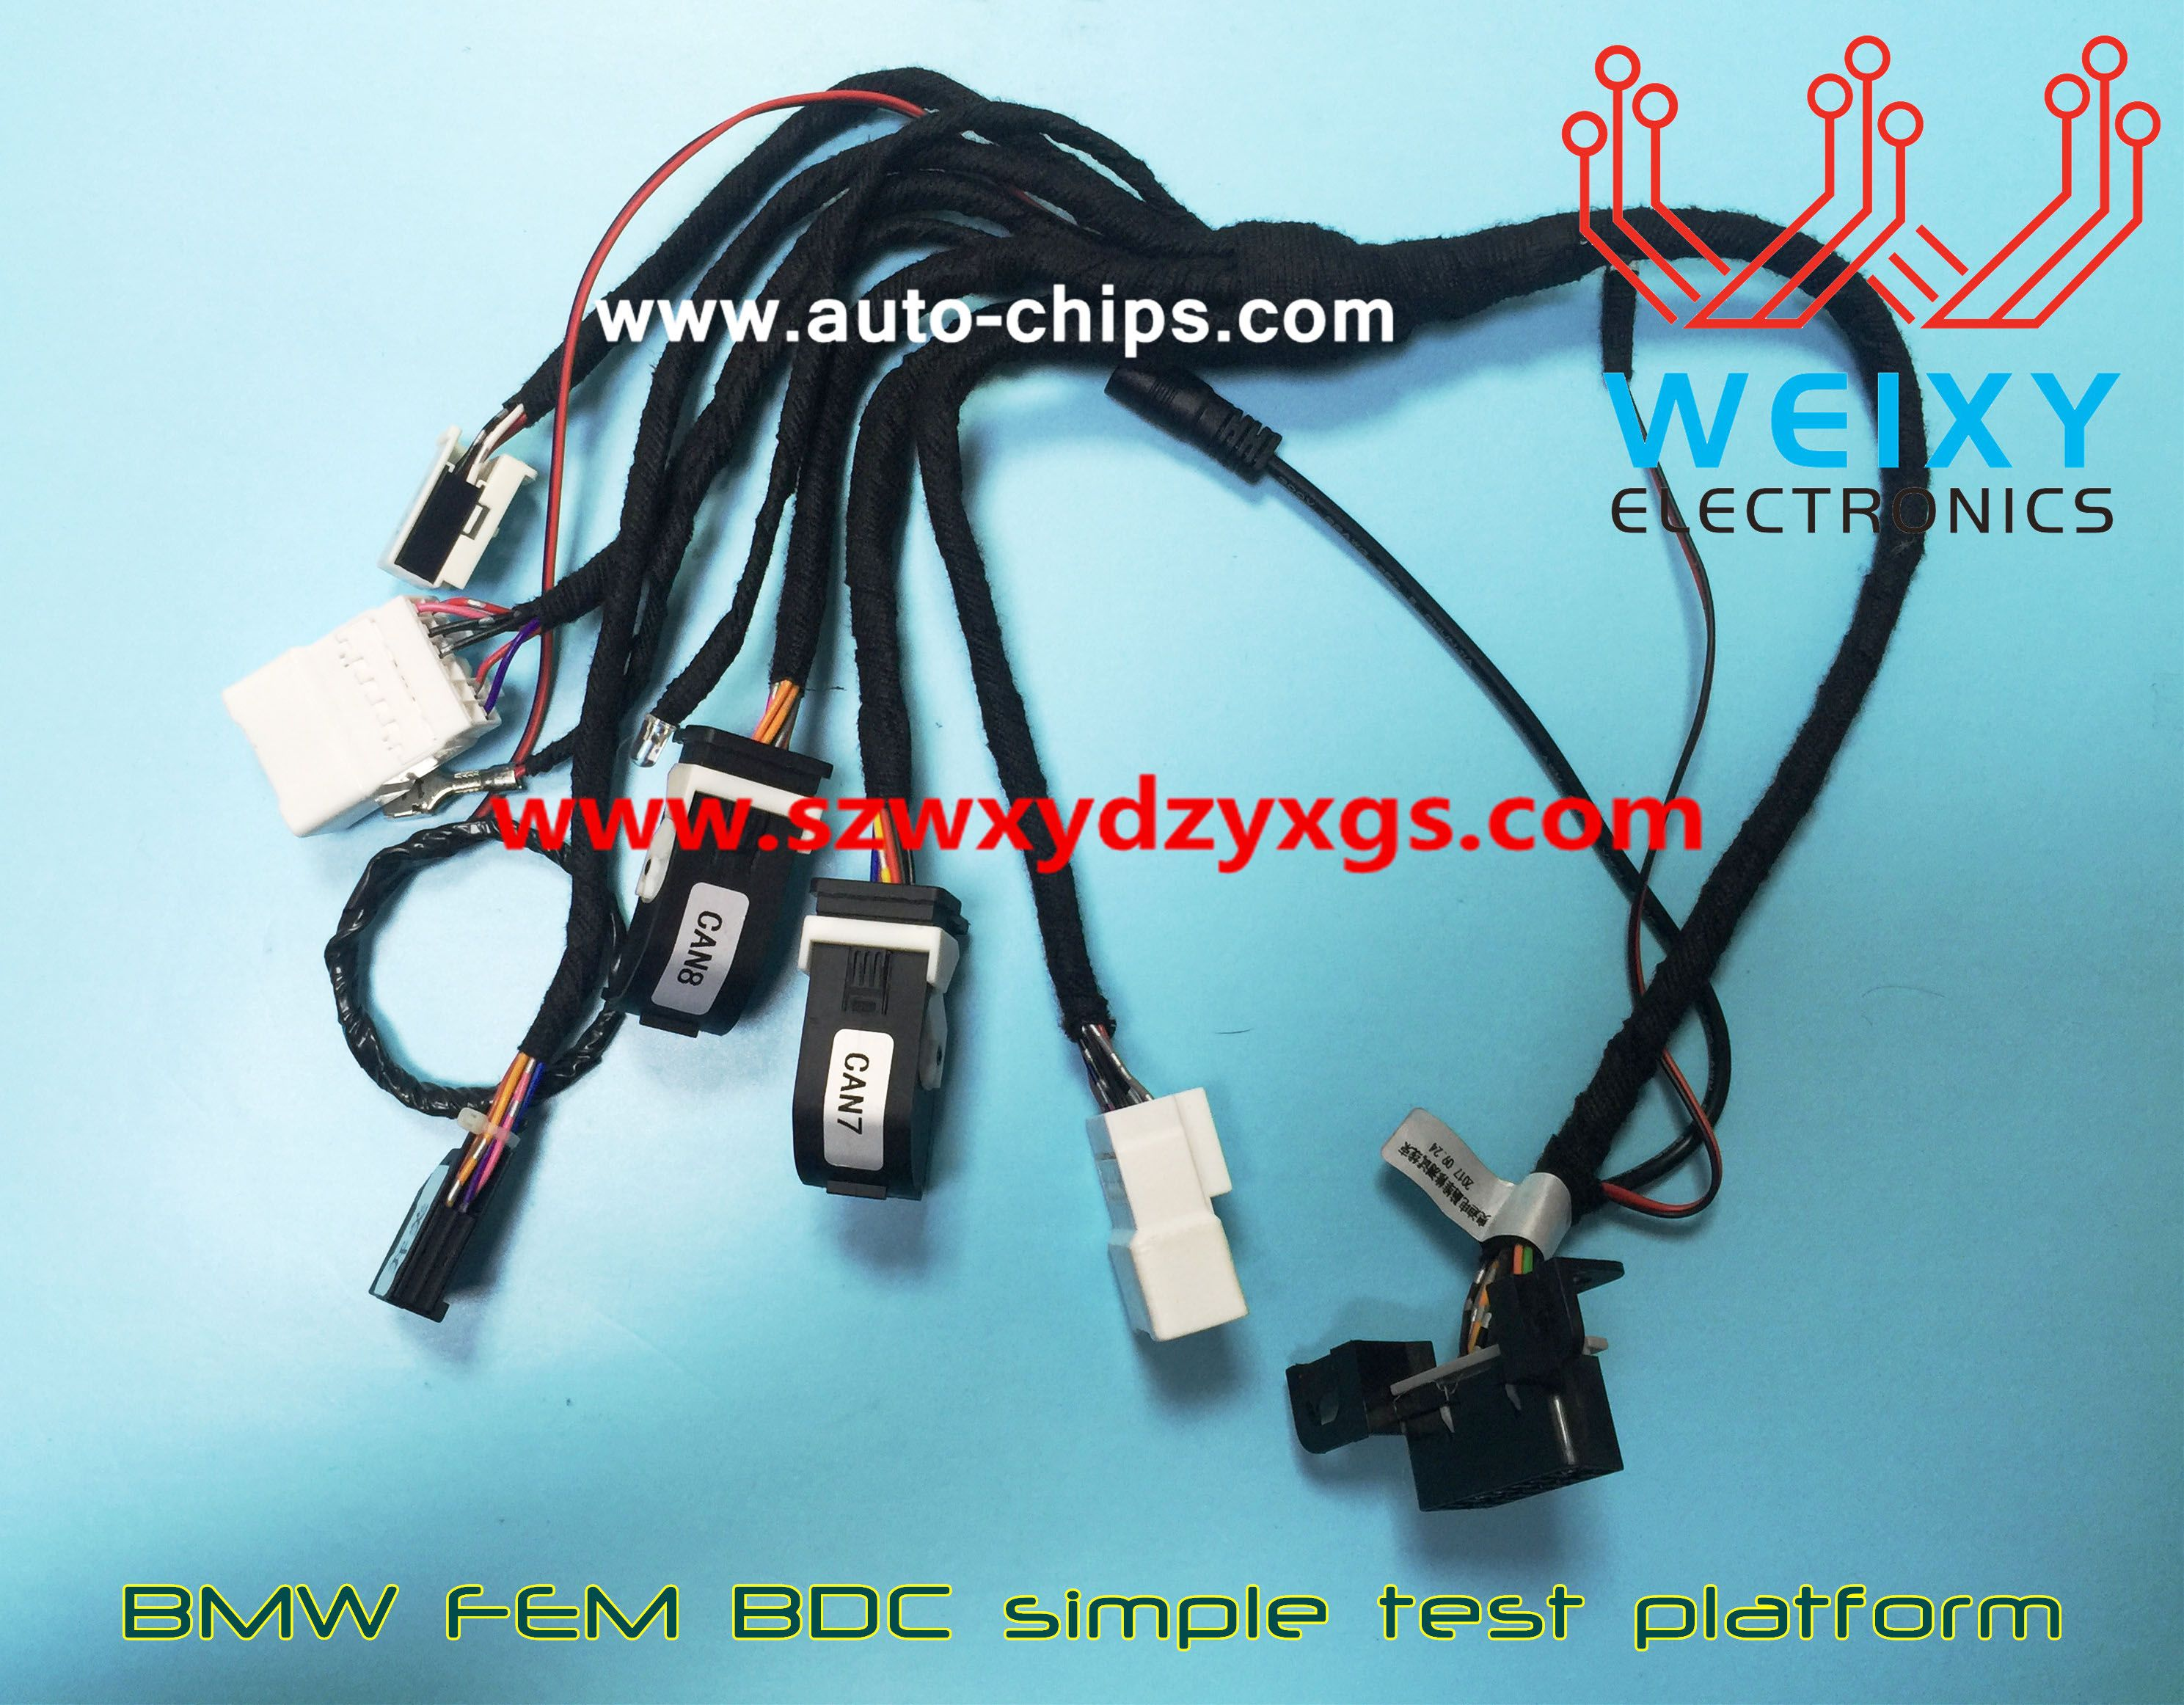 BMW FEM BDC simple test platform, An excellent tools for making keys ...